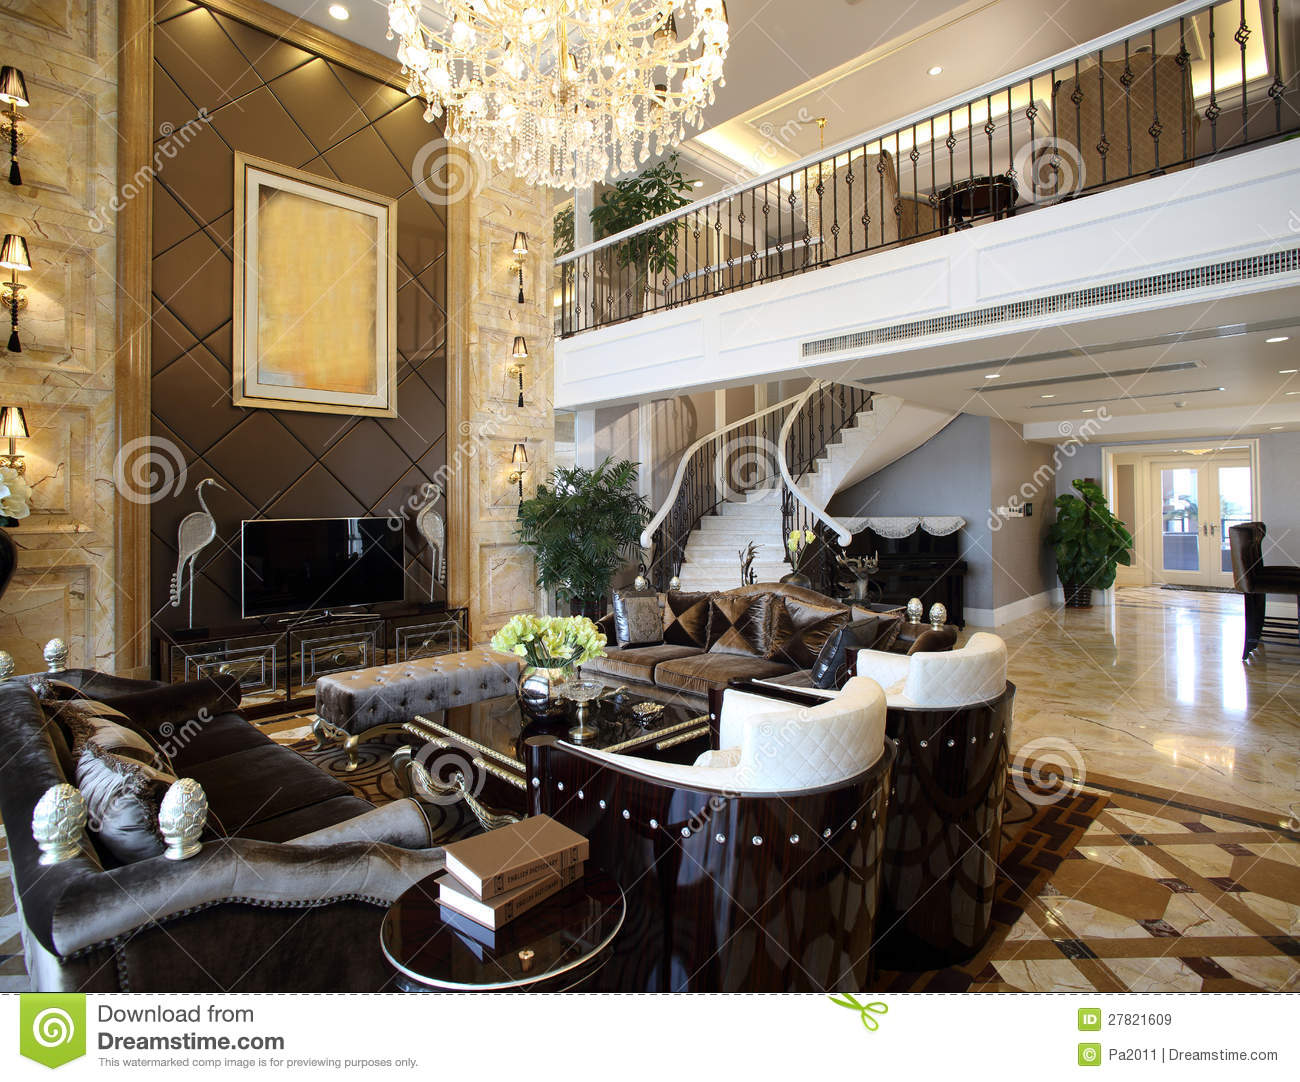 design interior living modern room. Modern Interior Design   Living Room Royalty Free Stock Images